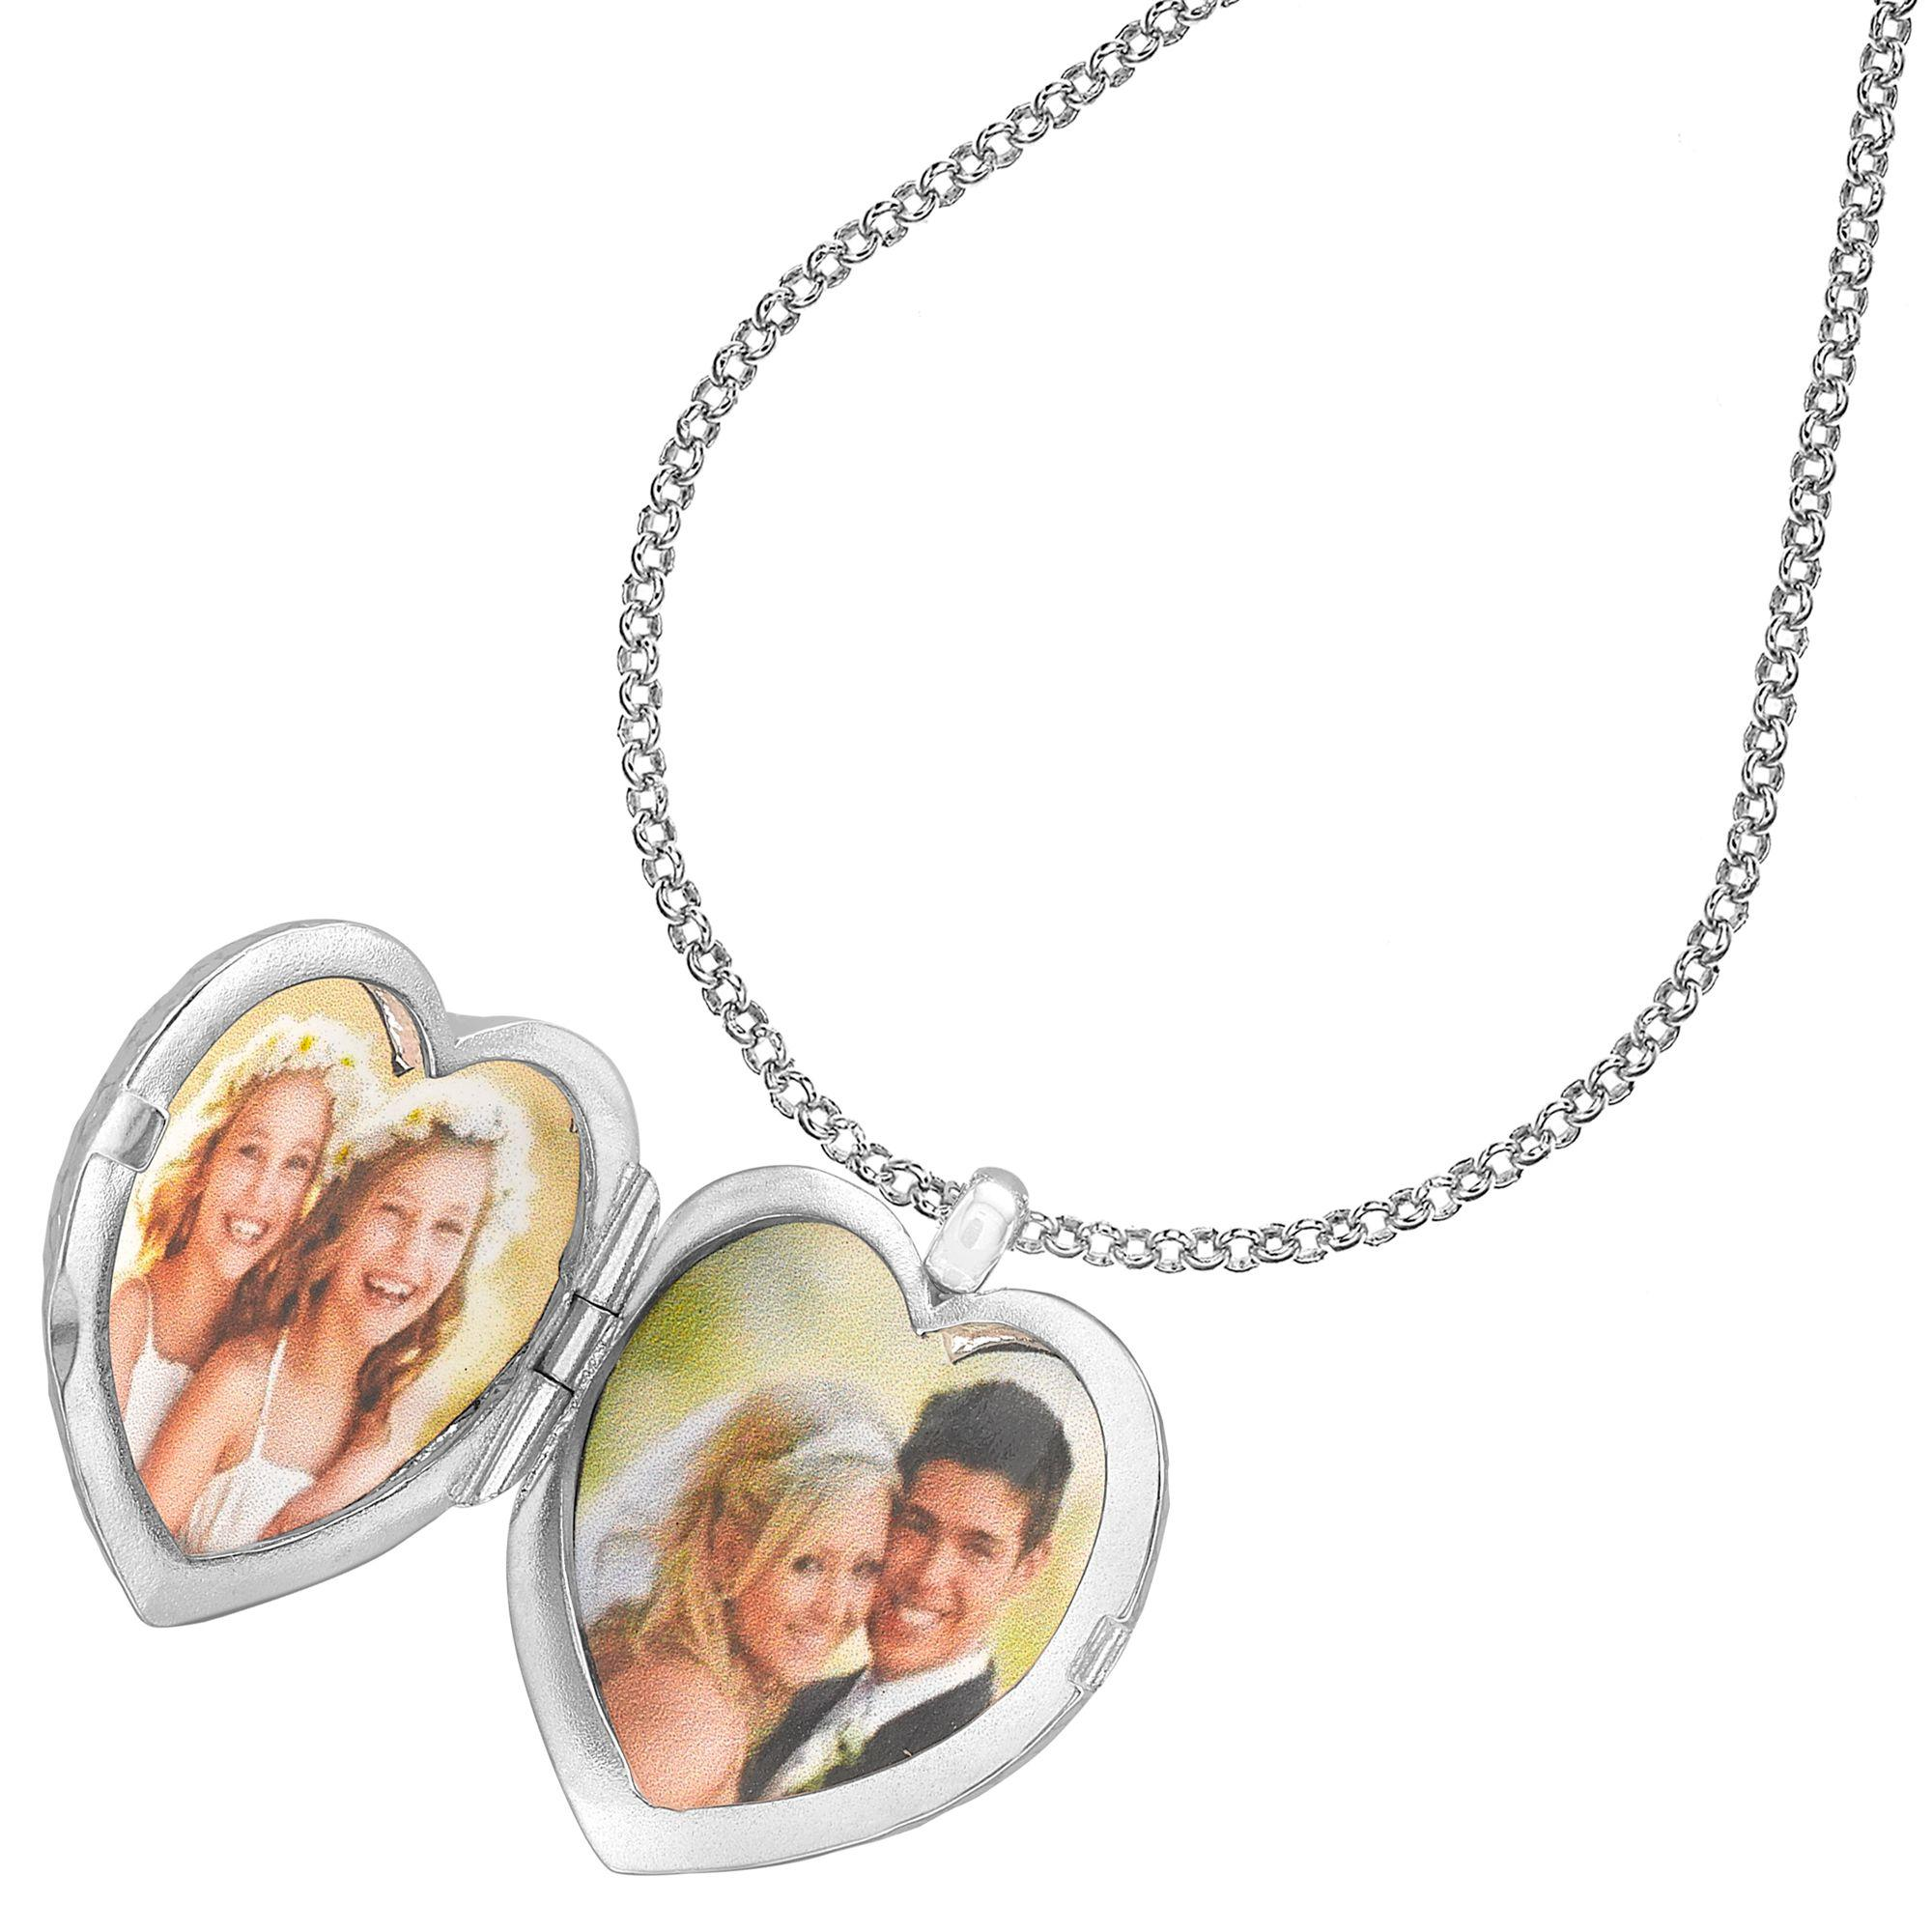 lockets silver oval engraved extra locket large dp necklace sterling